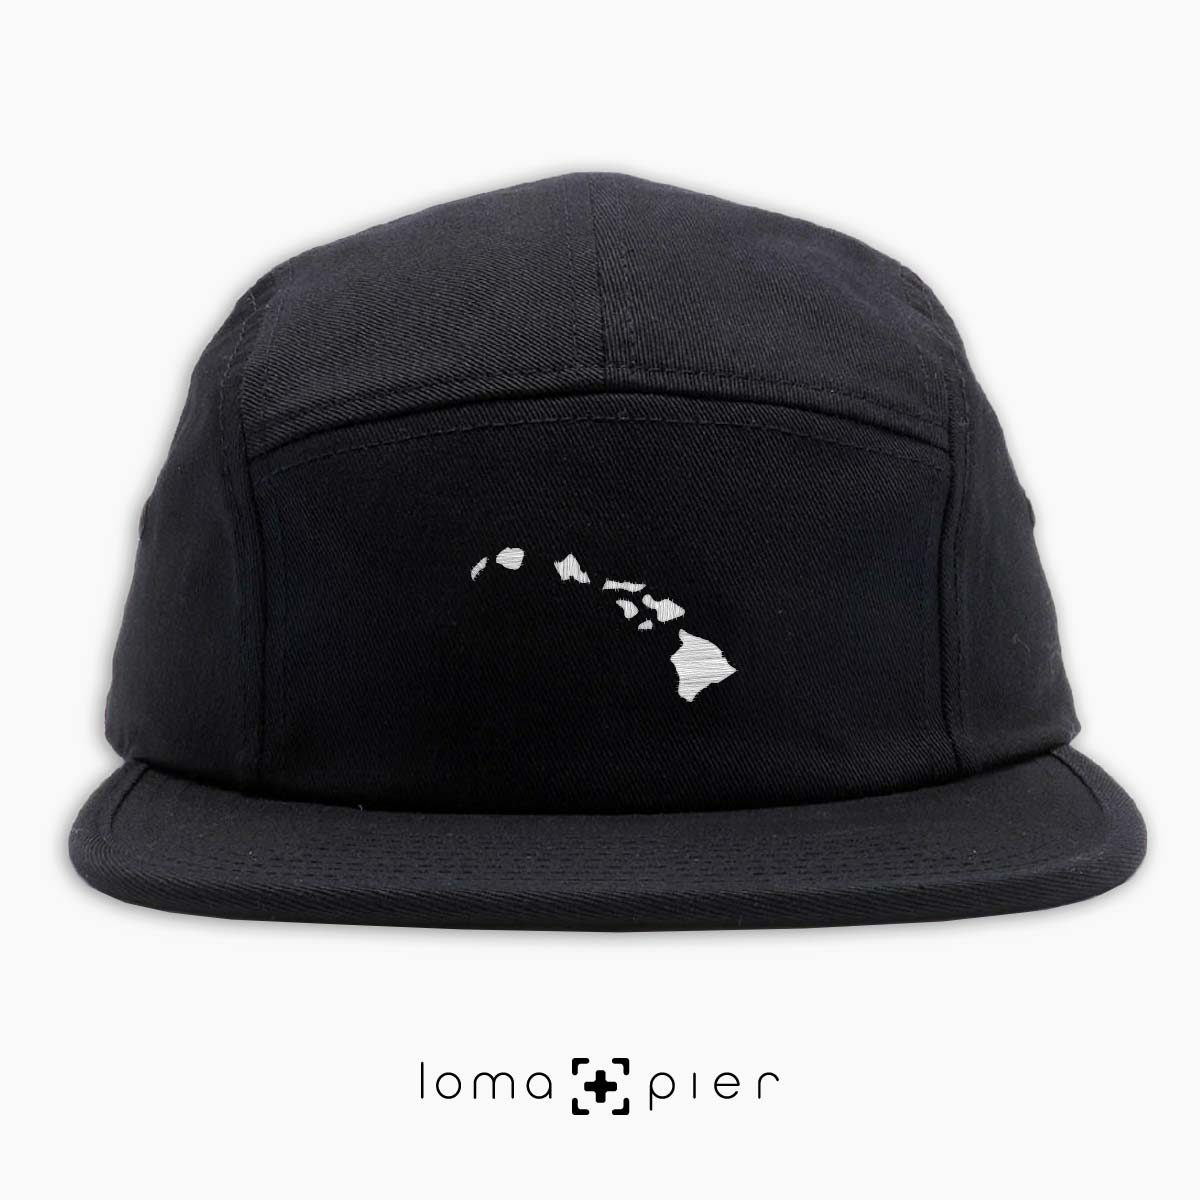 HAWAIIAN ISLANDS icon embroidered on a black cotton 5-panel hat by loma+pier hat store